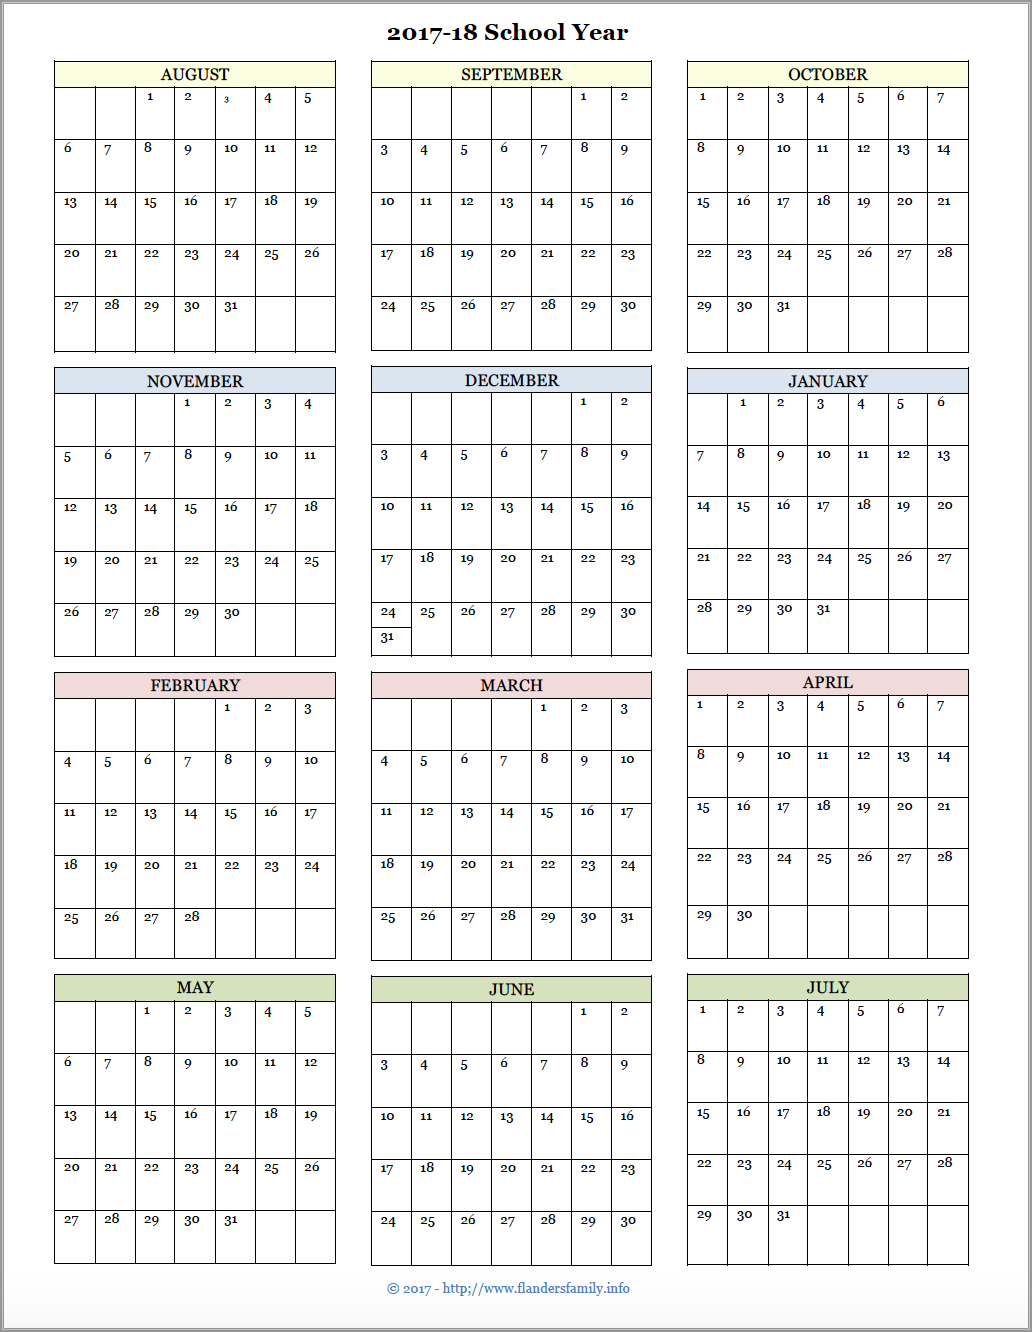 2017-2018 Academic Year Calendar with an August start date